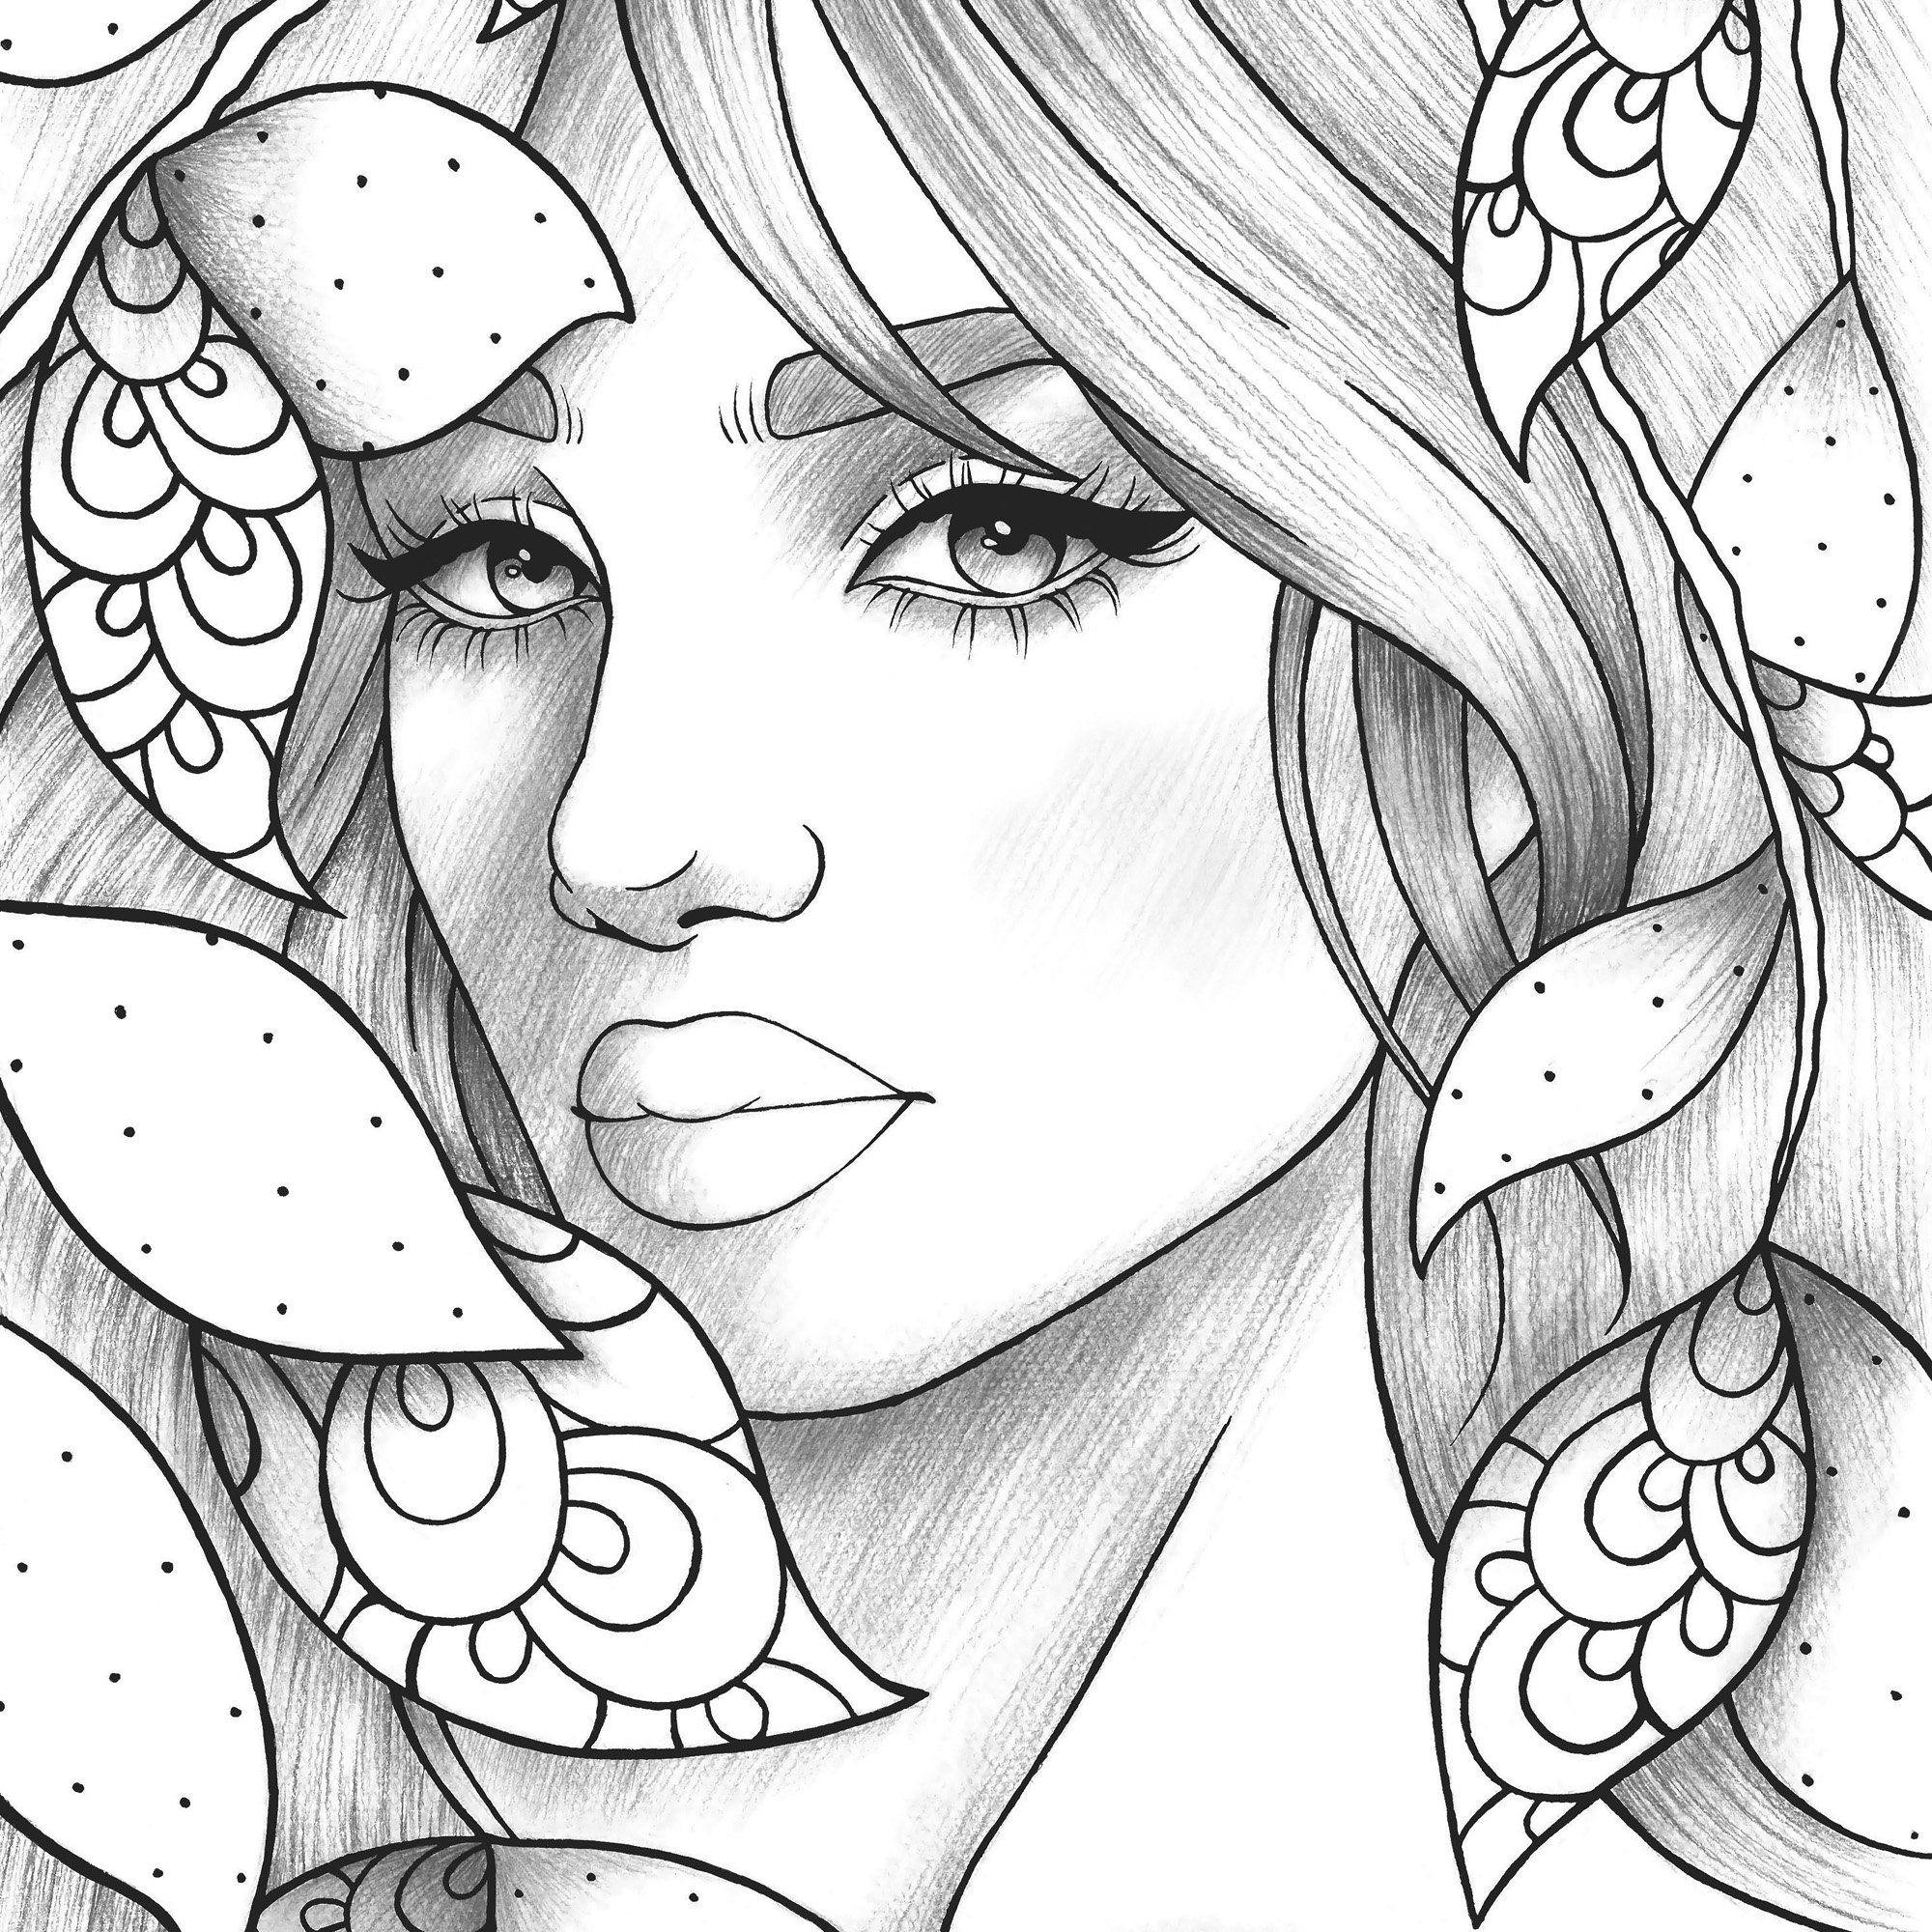 girl for coloring 8 anime girl coloring pages pdf jpg ai illustrator girl coloring for